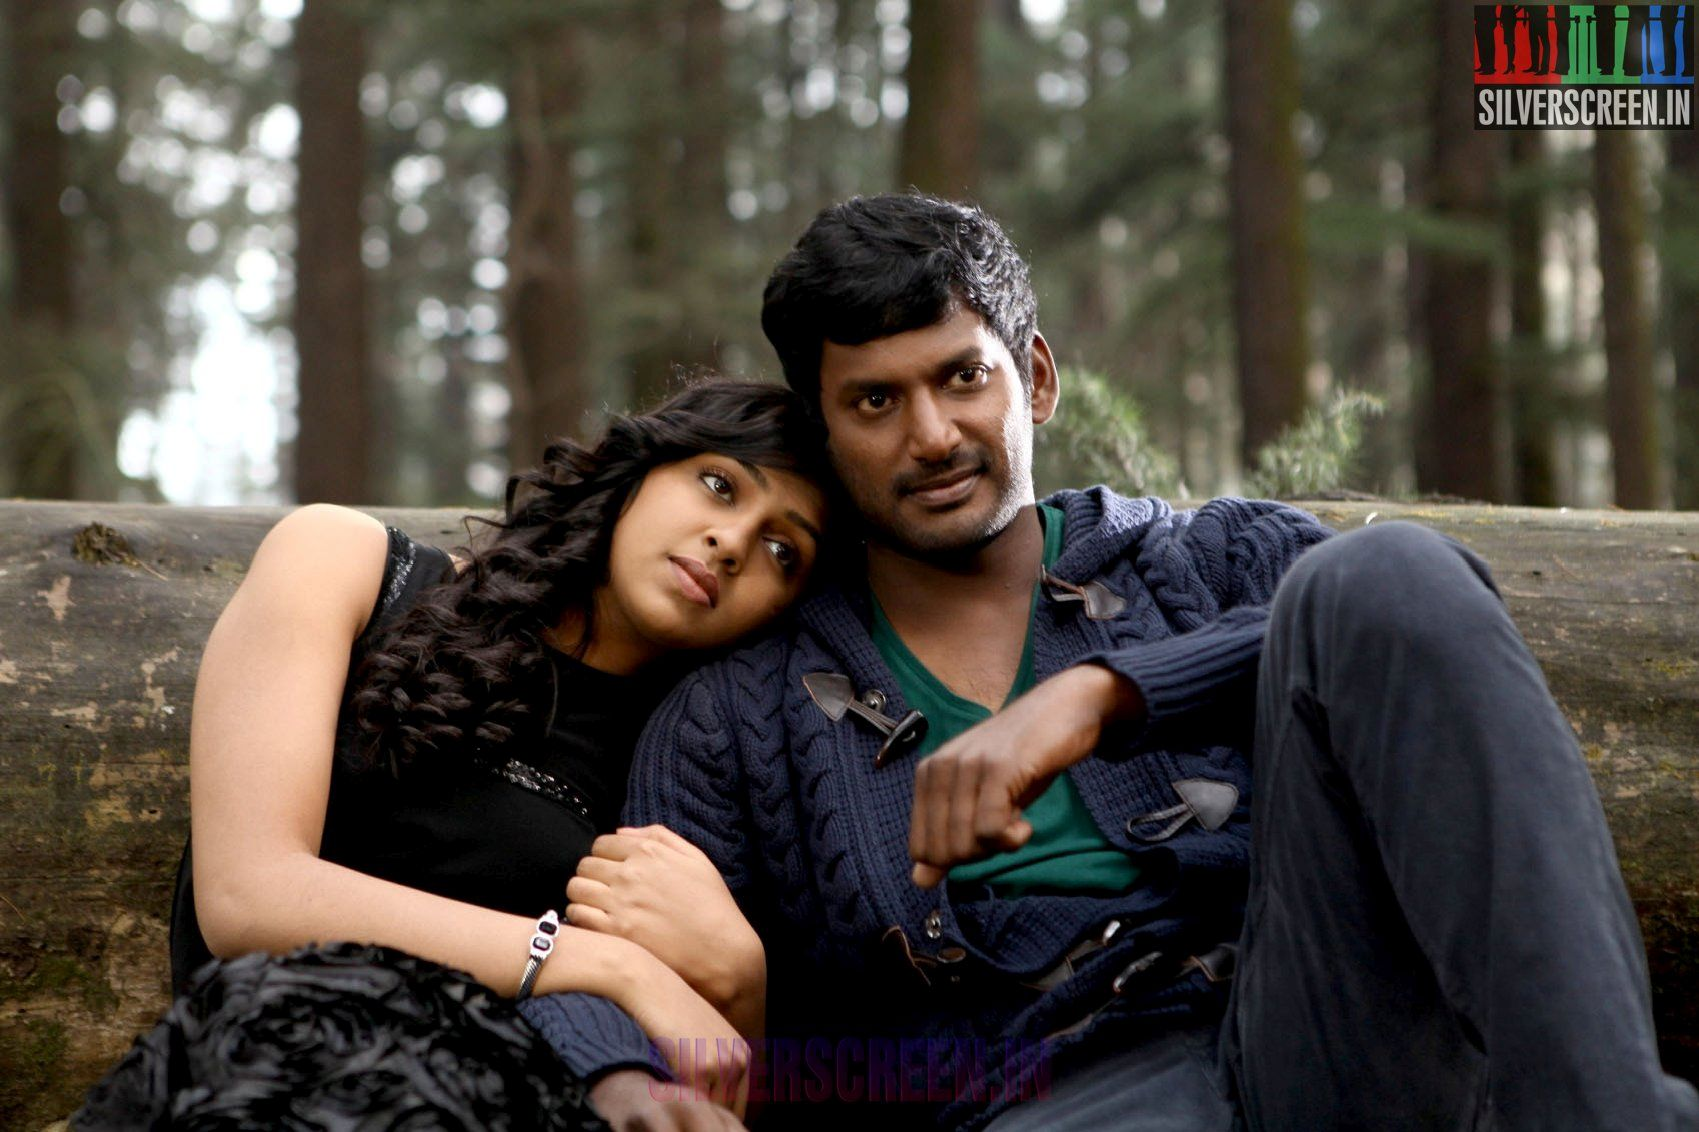 Review : Naan Sigappu Manithan - Silverscreen.in Naan Sigappu Manithan Tamil Movie